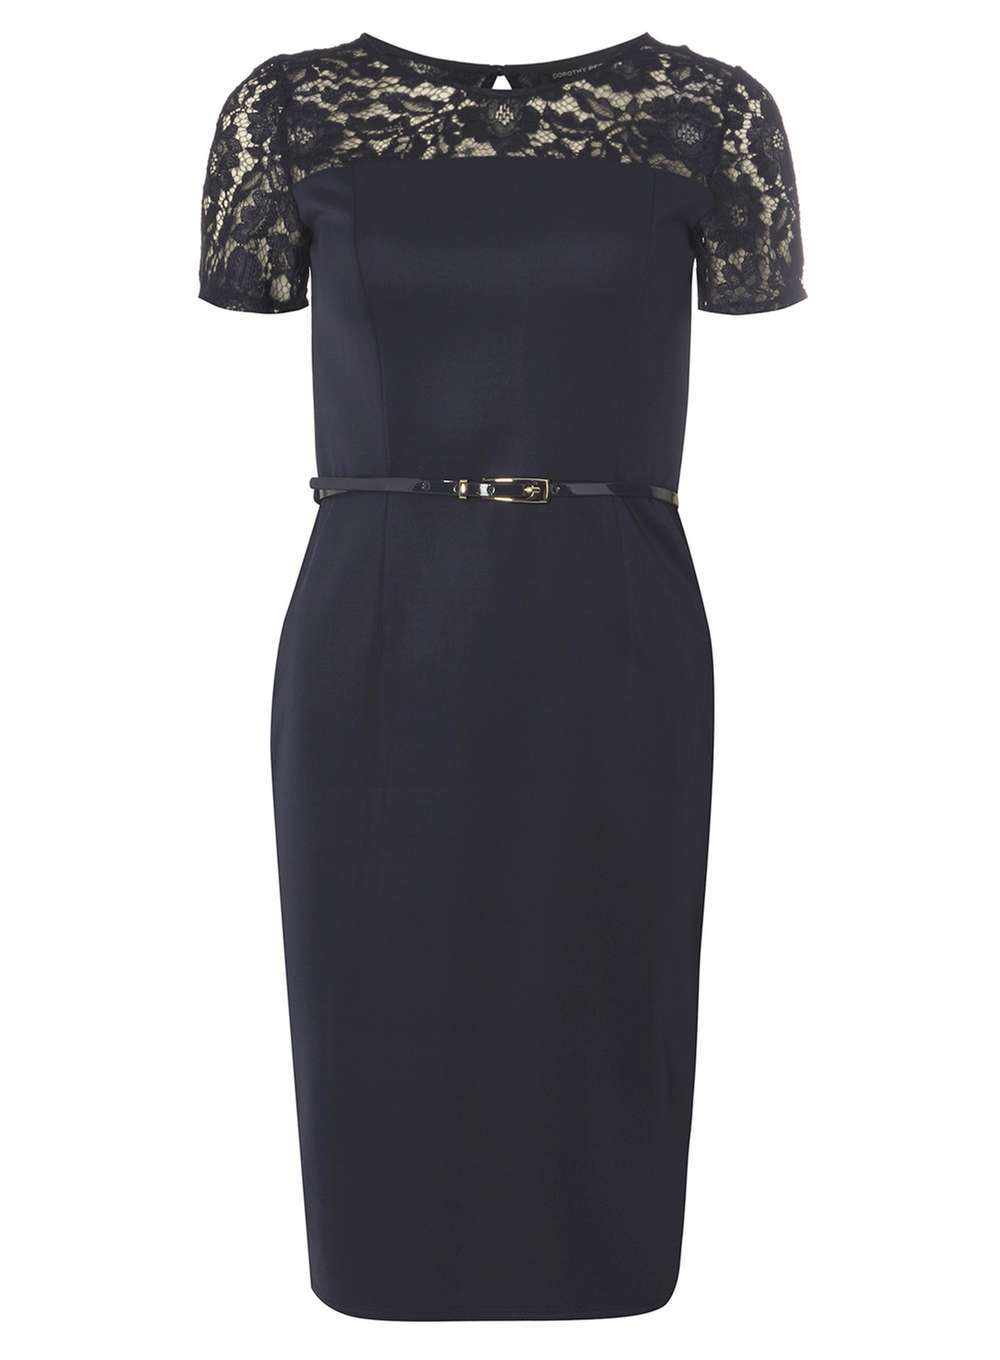 Womens Lace Contrast Pencil Dress Navy - style: shift; pattern: plain; waist detail: belted waist/tie at waist/drawstring; predominant colour: navy; occasions: evening; length: just above the knee; fit: body skimming; fibres: polyester/polyamide - stretch; neckline: crew; sleeve length: short sleeve; sleeve style: standard; pattern type: fabric; texture group: jersey - stretchy/drapey; embellishment: lace; shoulder detail: sheer at shoulder; season: a/w 2016; wardrobe: event; embellishment location: shoulder, sleeve/cuff